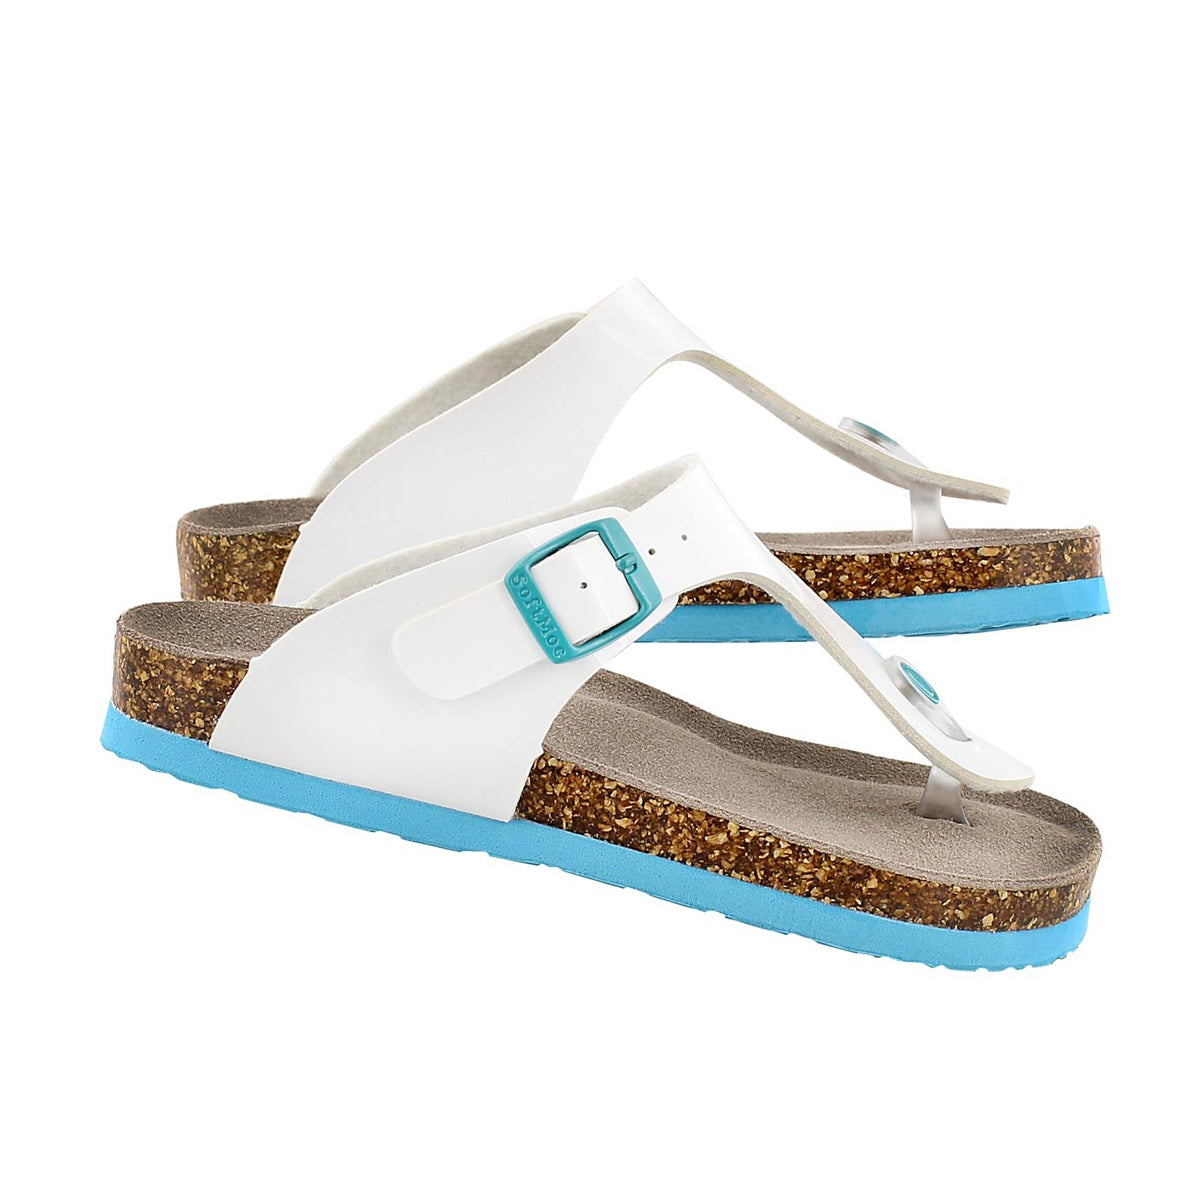 Grls Angy 3 white patent thong sandal